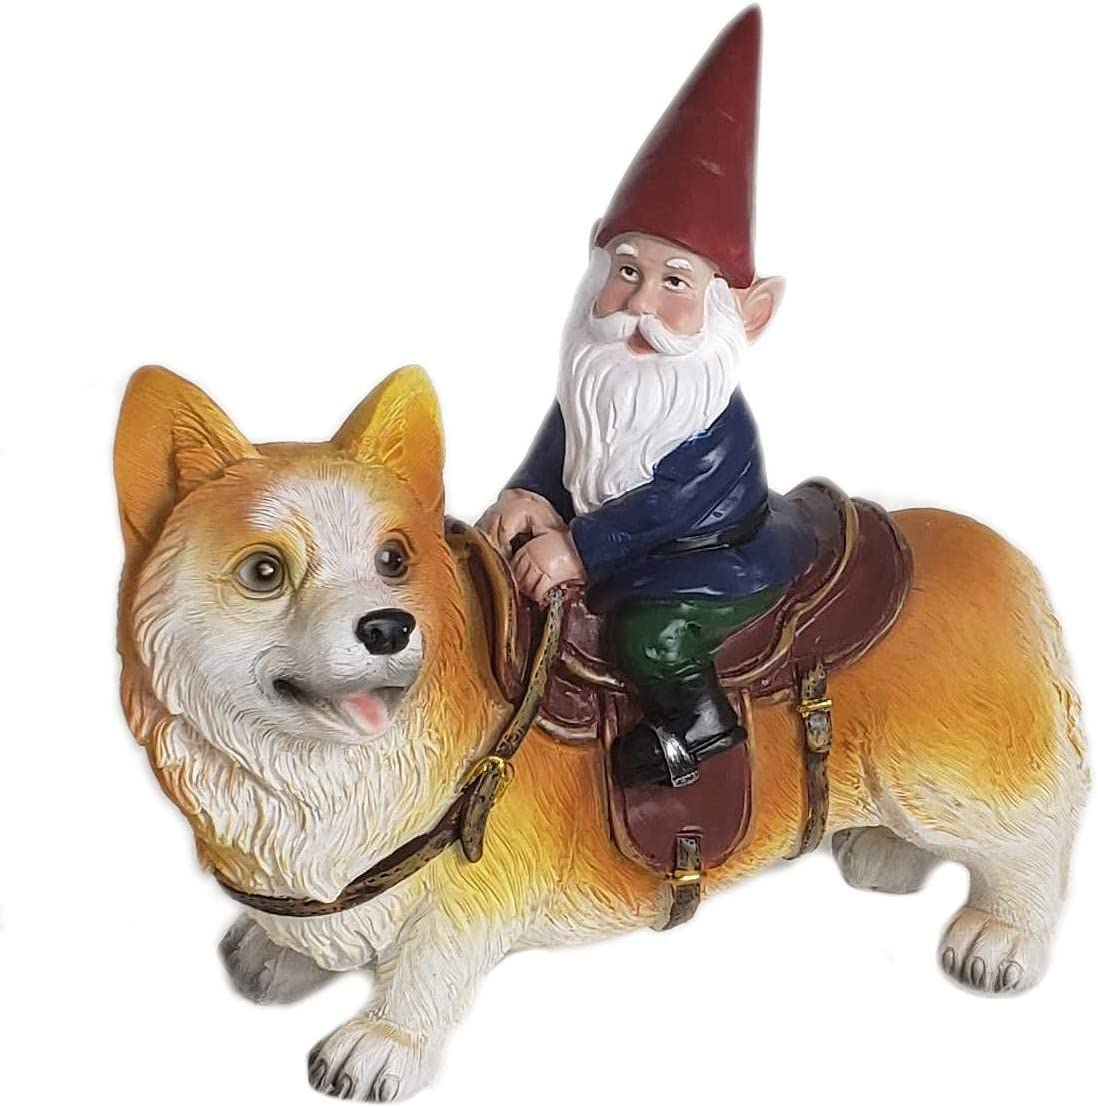 Funny Guy Mugs Garden Gnome Statue - Gnome Riding a Corgi - Indoor/Outdoor Garden Gnome Sculpture for Patio, Yard or Lawn